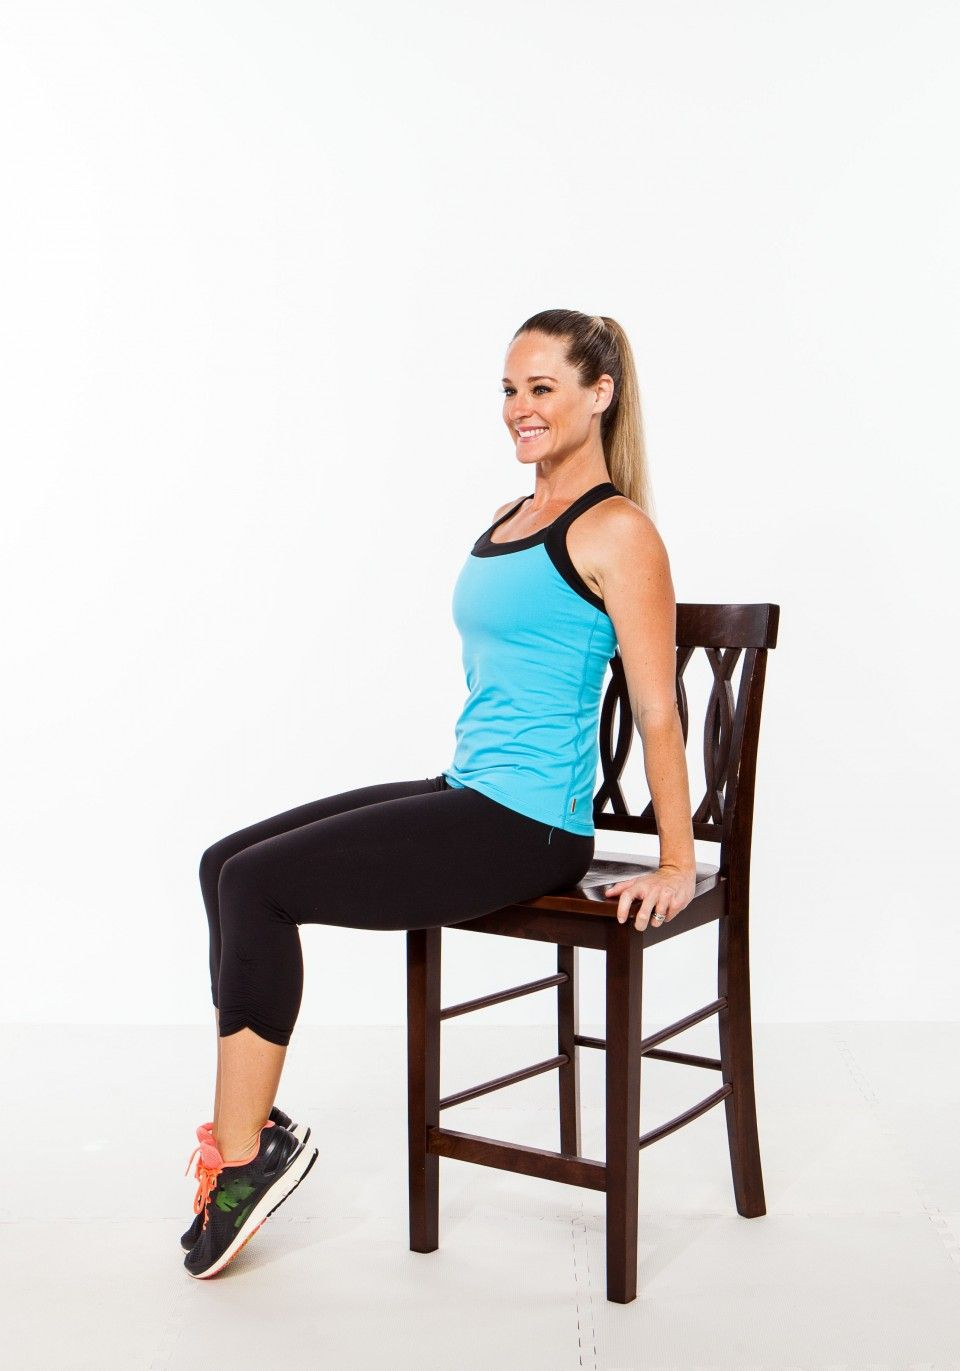 20-minute full body chair workout | chair workout, full body and